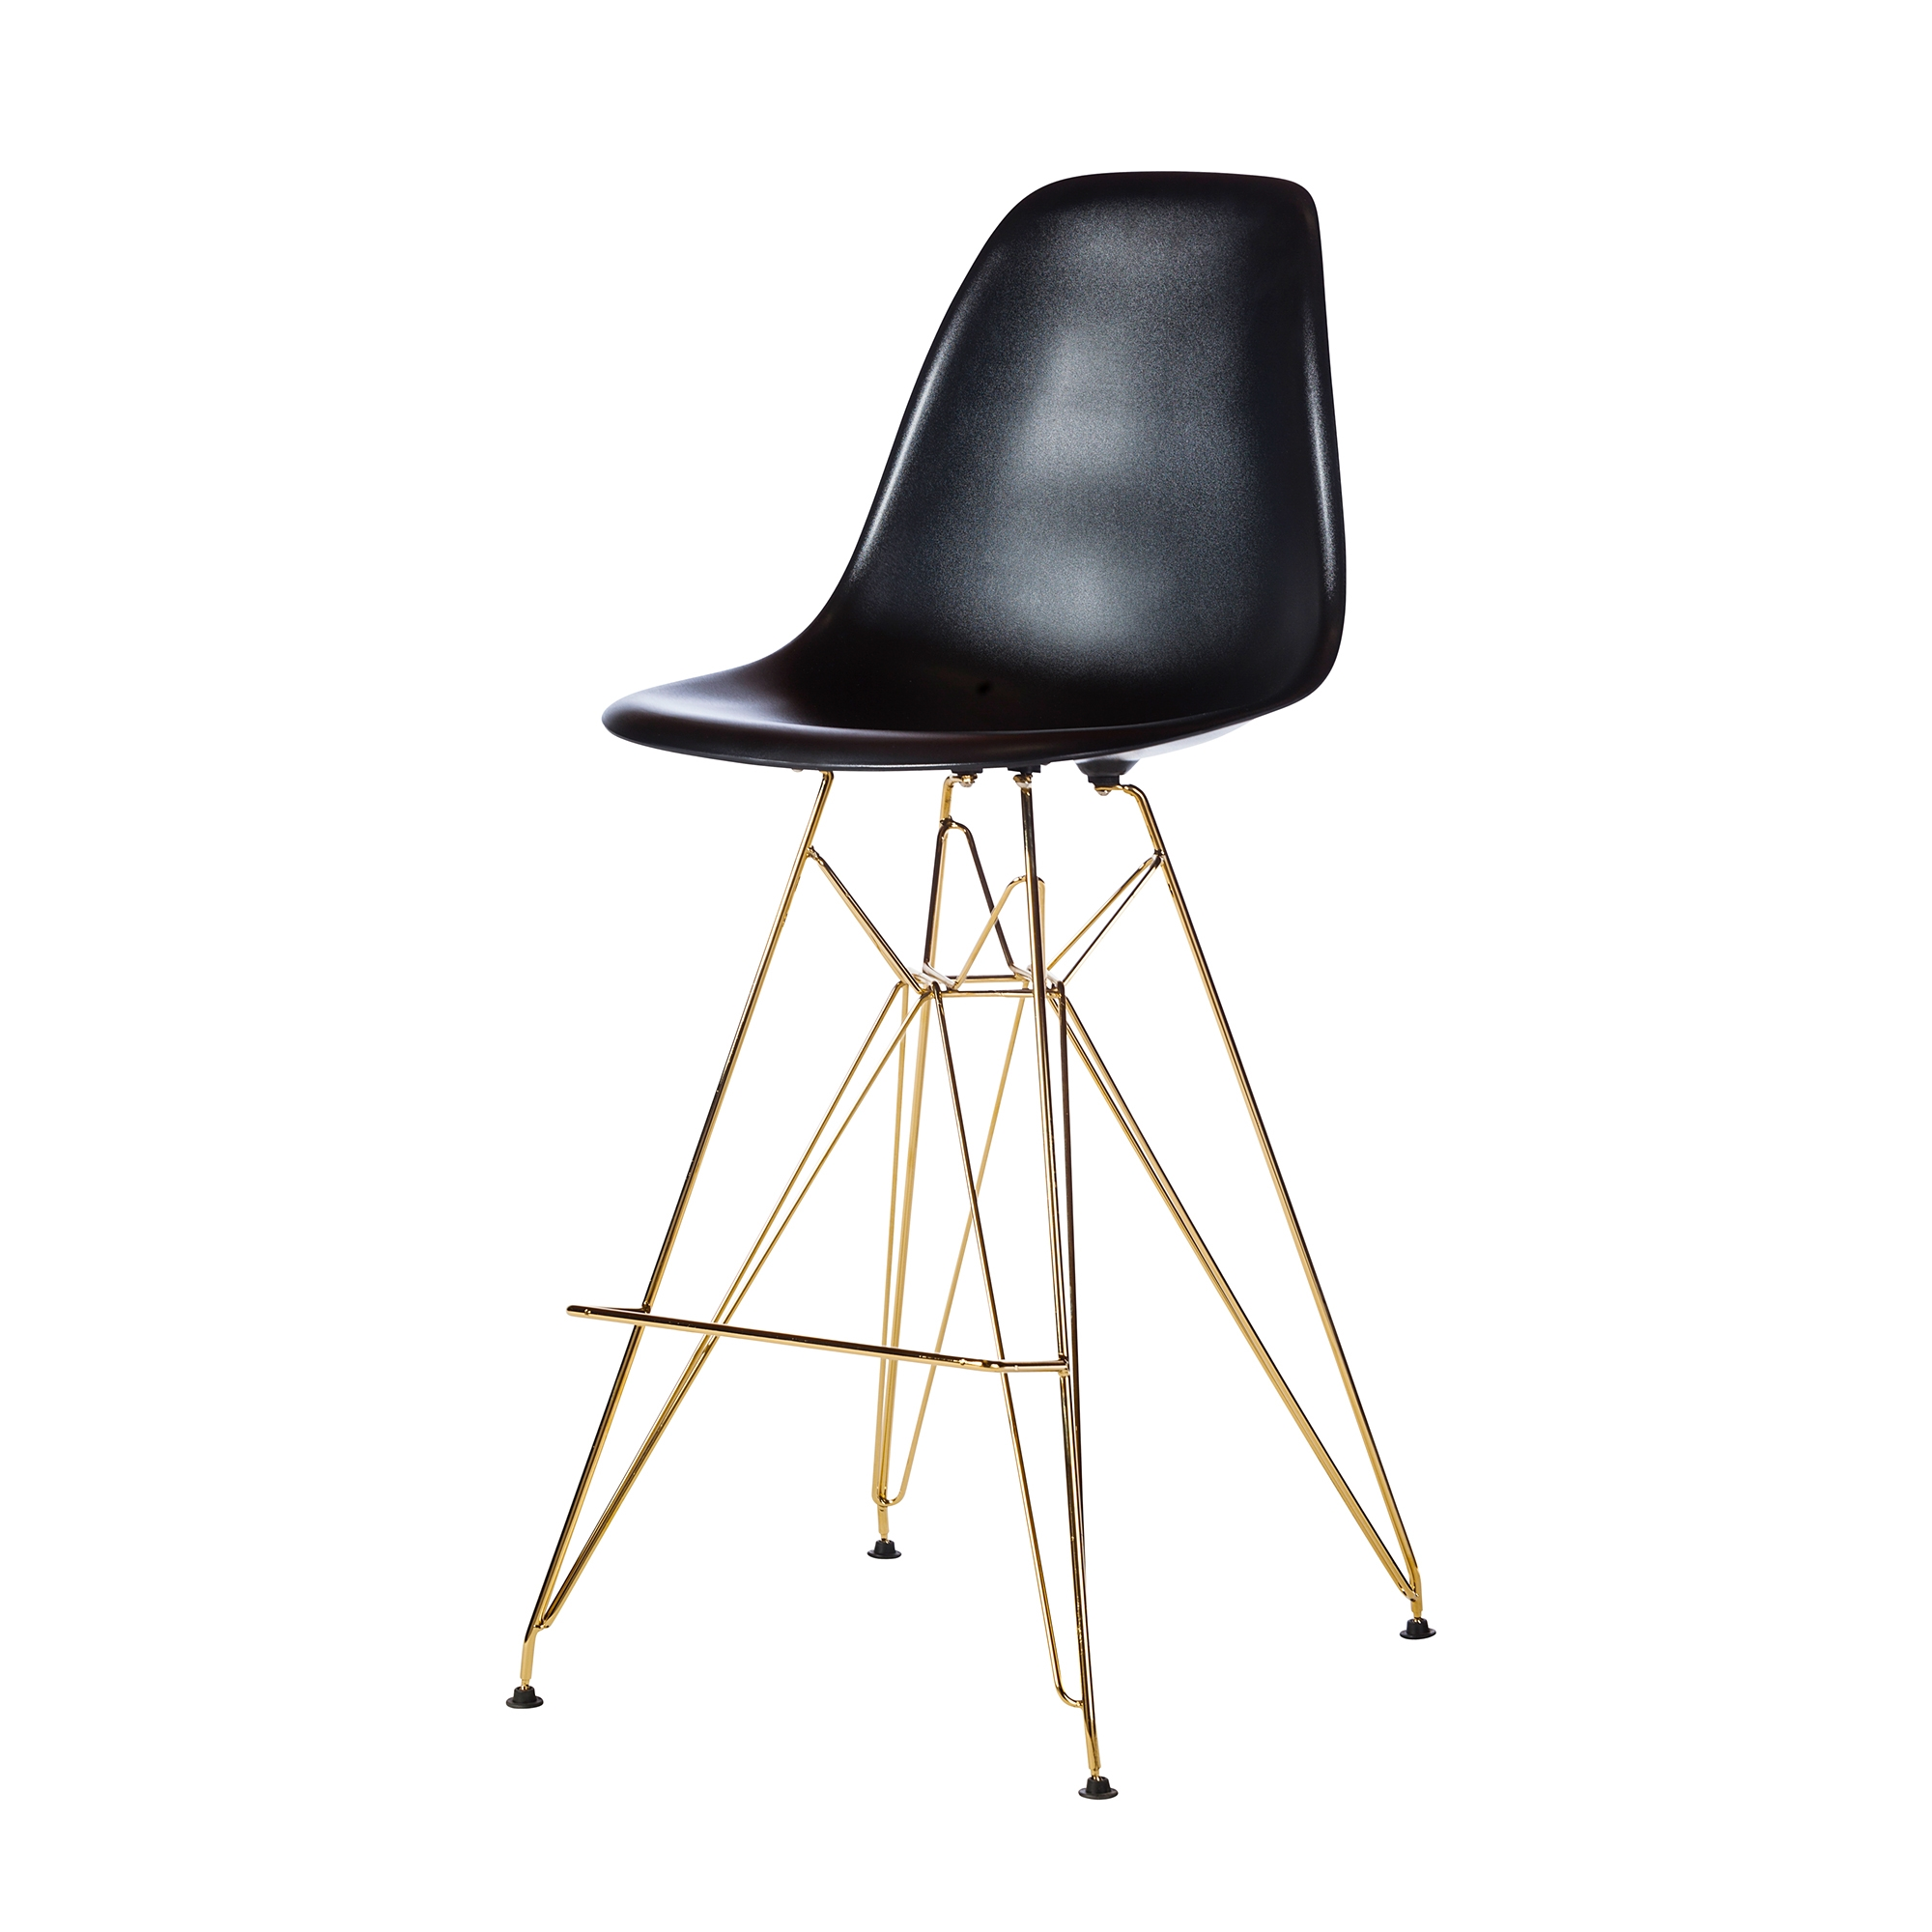 Molded Acrylic Bar Stool In Black And Gold Finish Legs The Khazana